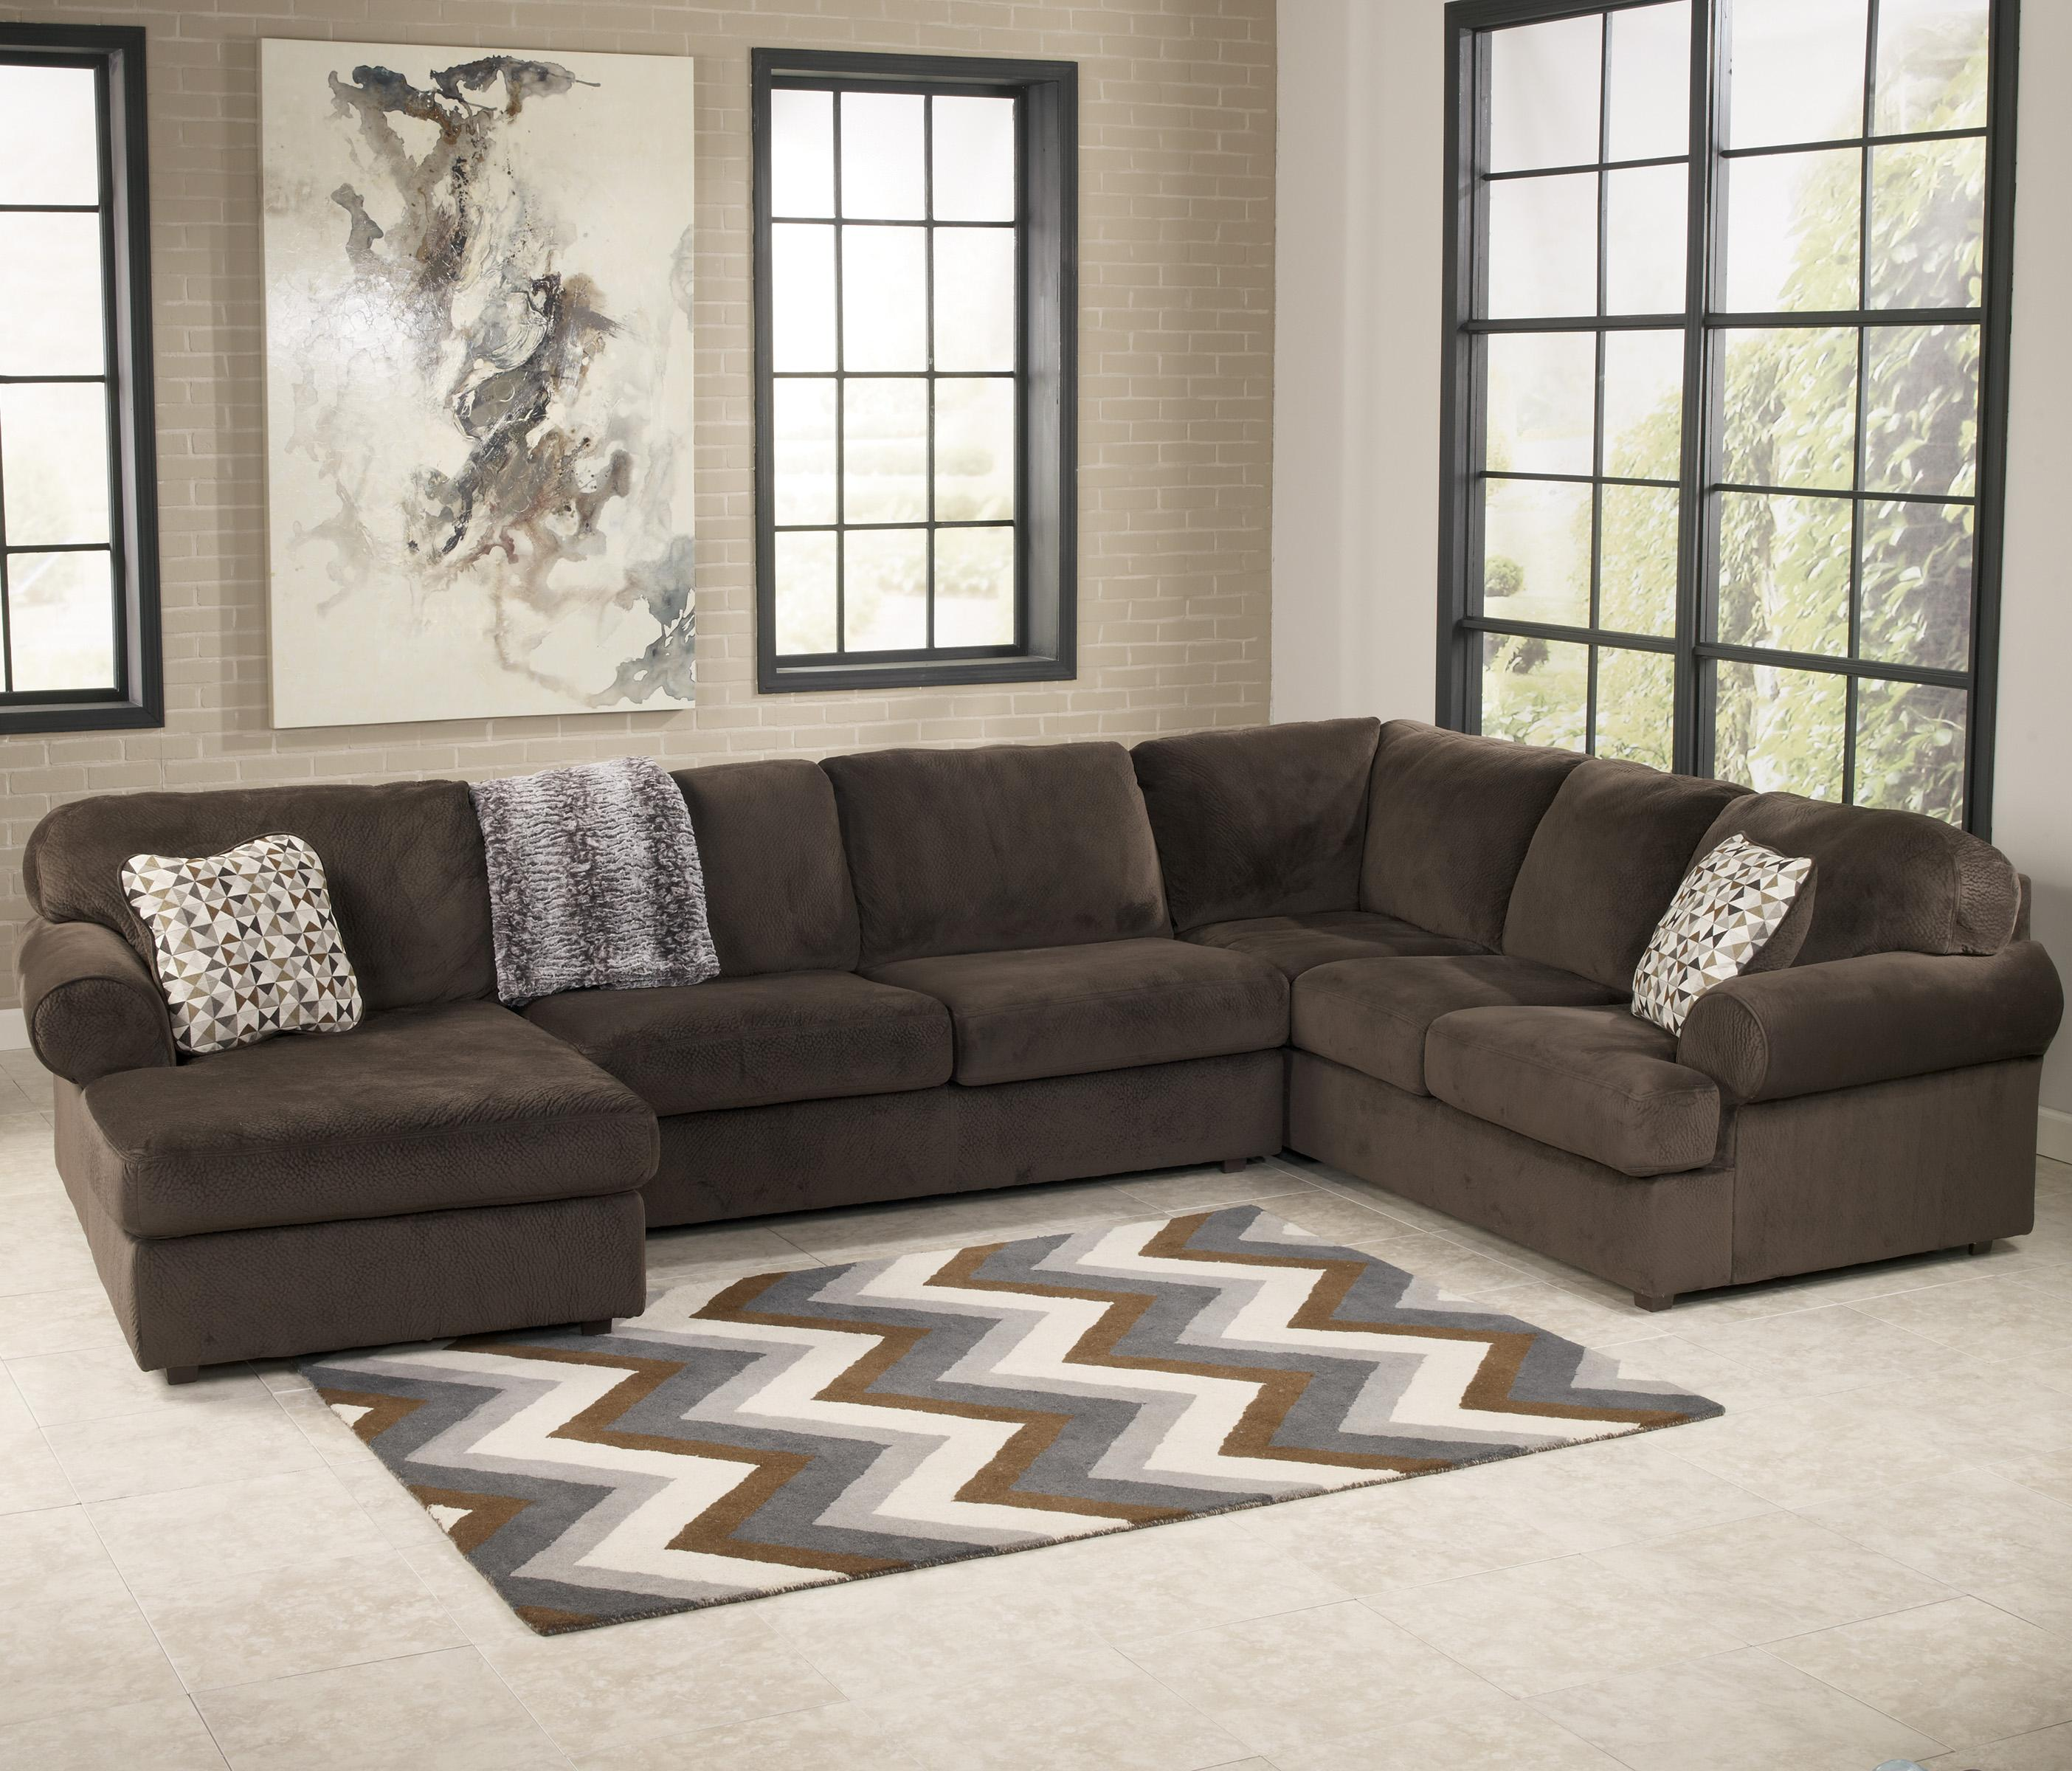 Signature design by ashley jessa place chocolate casual for Ashley chaise sectional